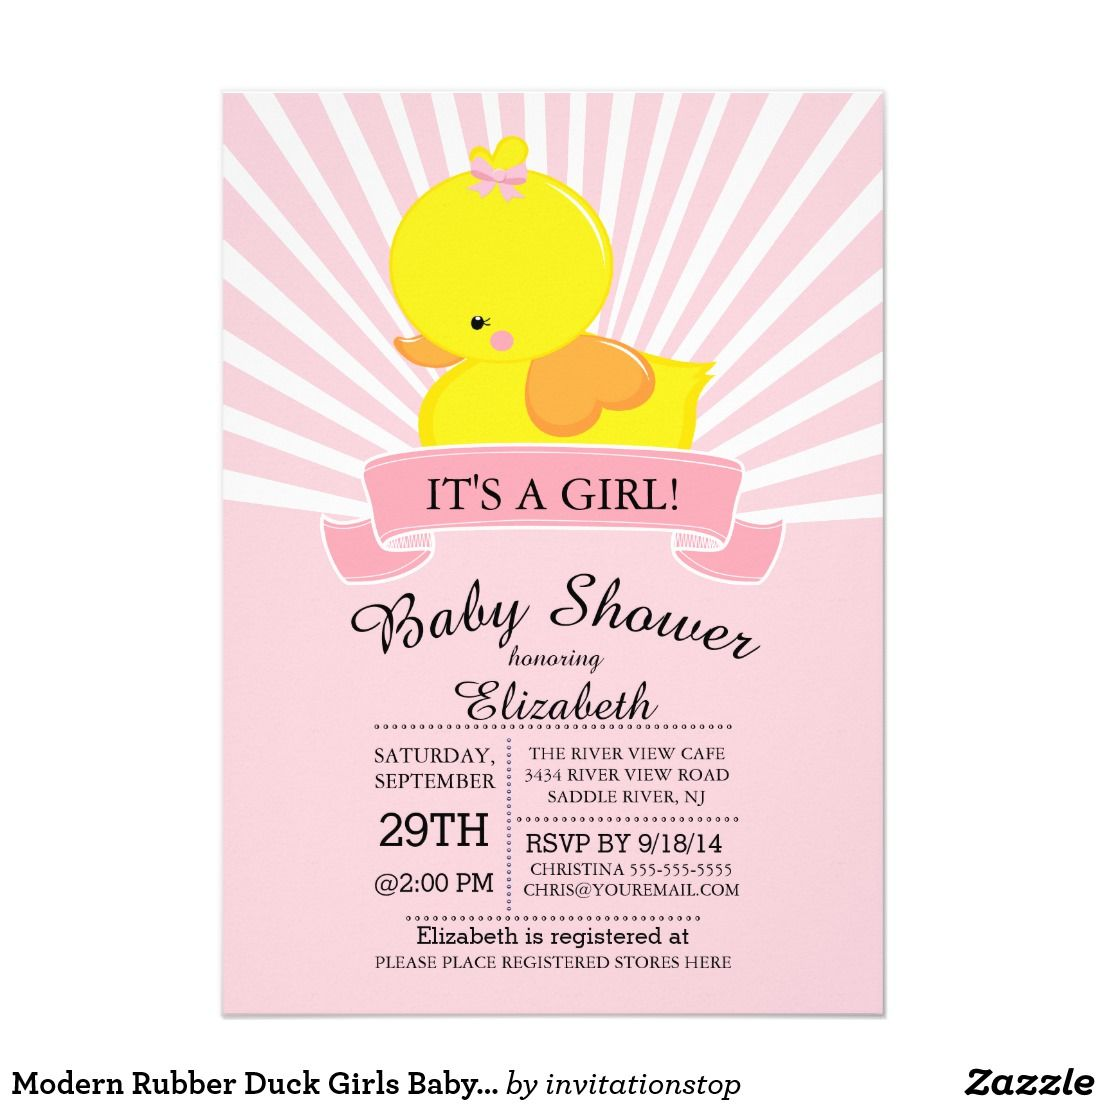 Modern Rubber Duck Girls Baby Shower Invitation Modern bold & cute ...